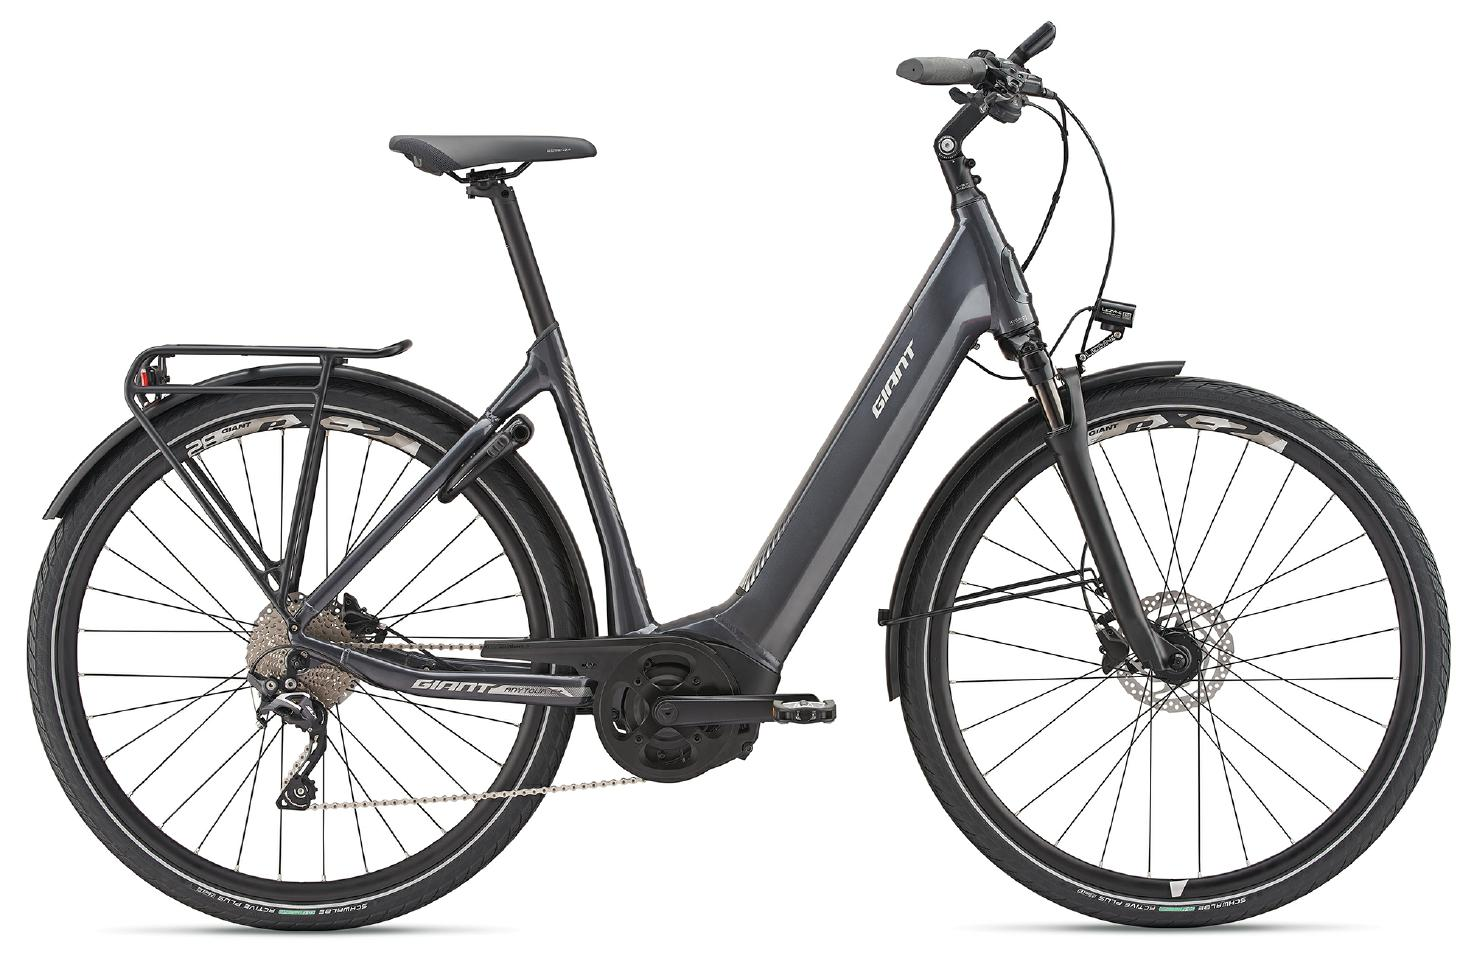 Giant Anytour E+ 1 - LDS - Trekking e-Bike - 2019